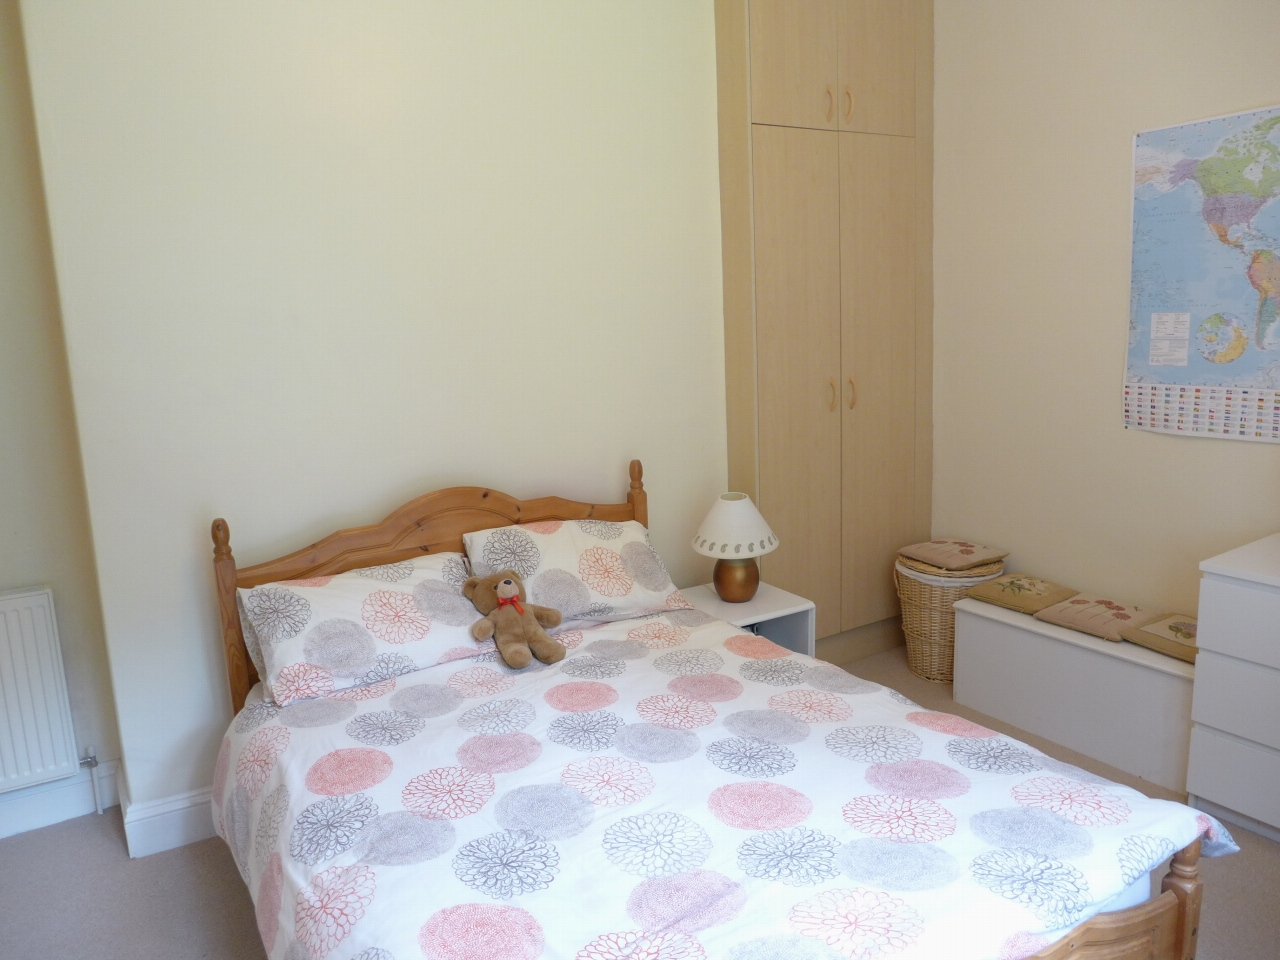 3 bedroom end terraced house For Sale in Calderdale - Photograph 8.